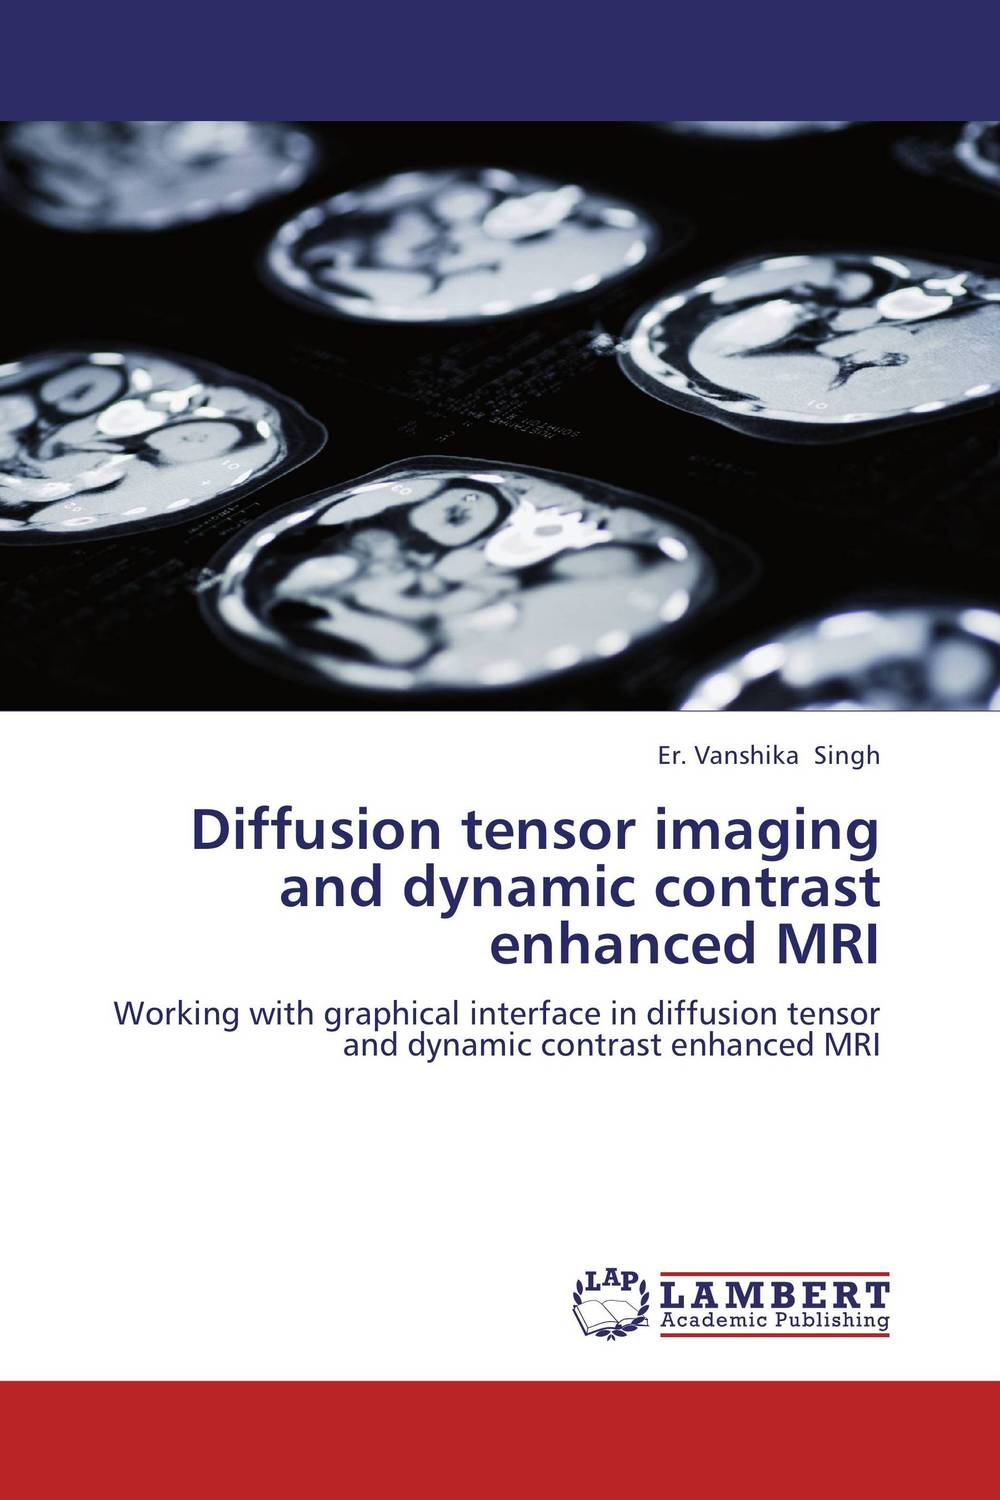 Diffusion tensor imaging and dynamic contrast enhanced MRI imaging of the human brain in health and disease